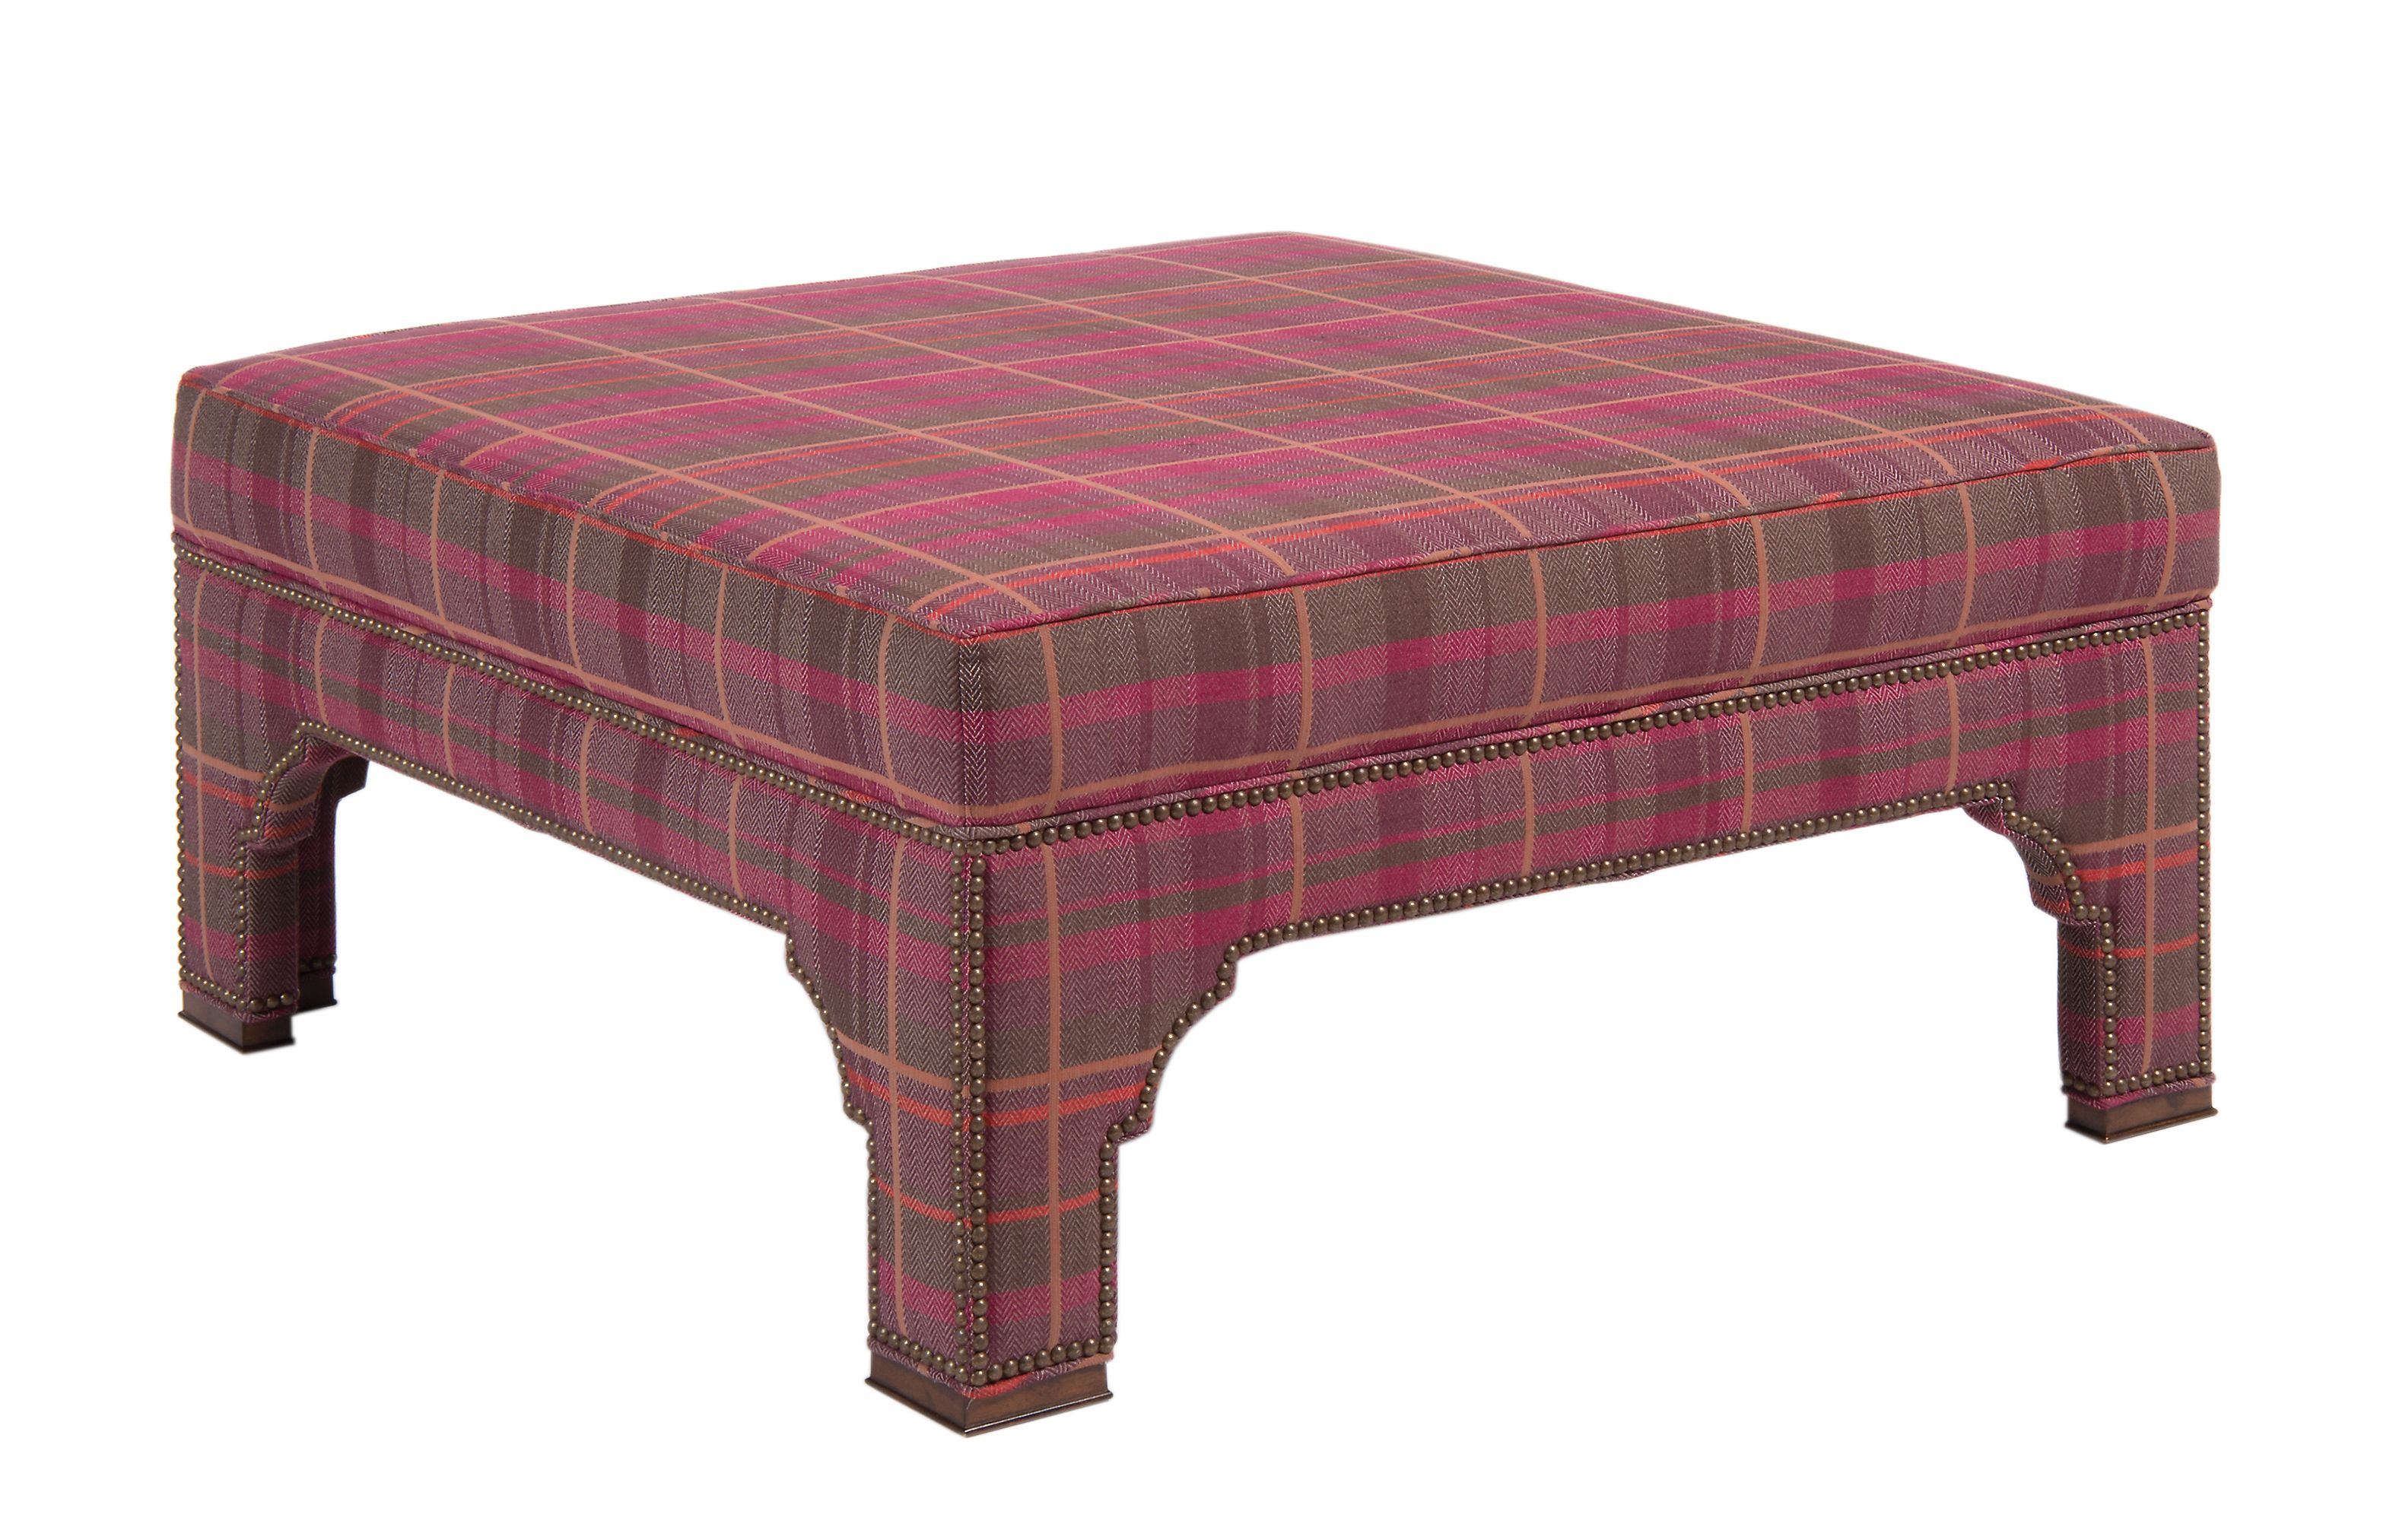 Peachy Pearsons 215 Square Ottoman In Purple Menswear Plaid Dailytribune Chair Design For Home Dailytribuneorg